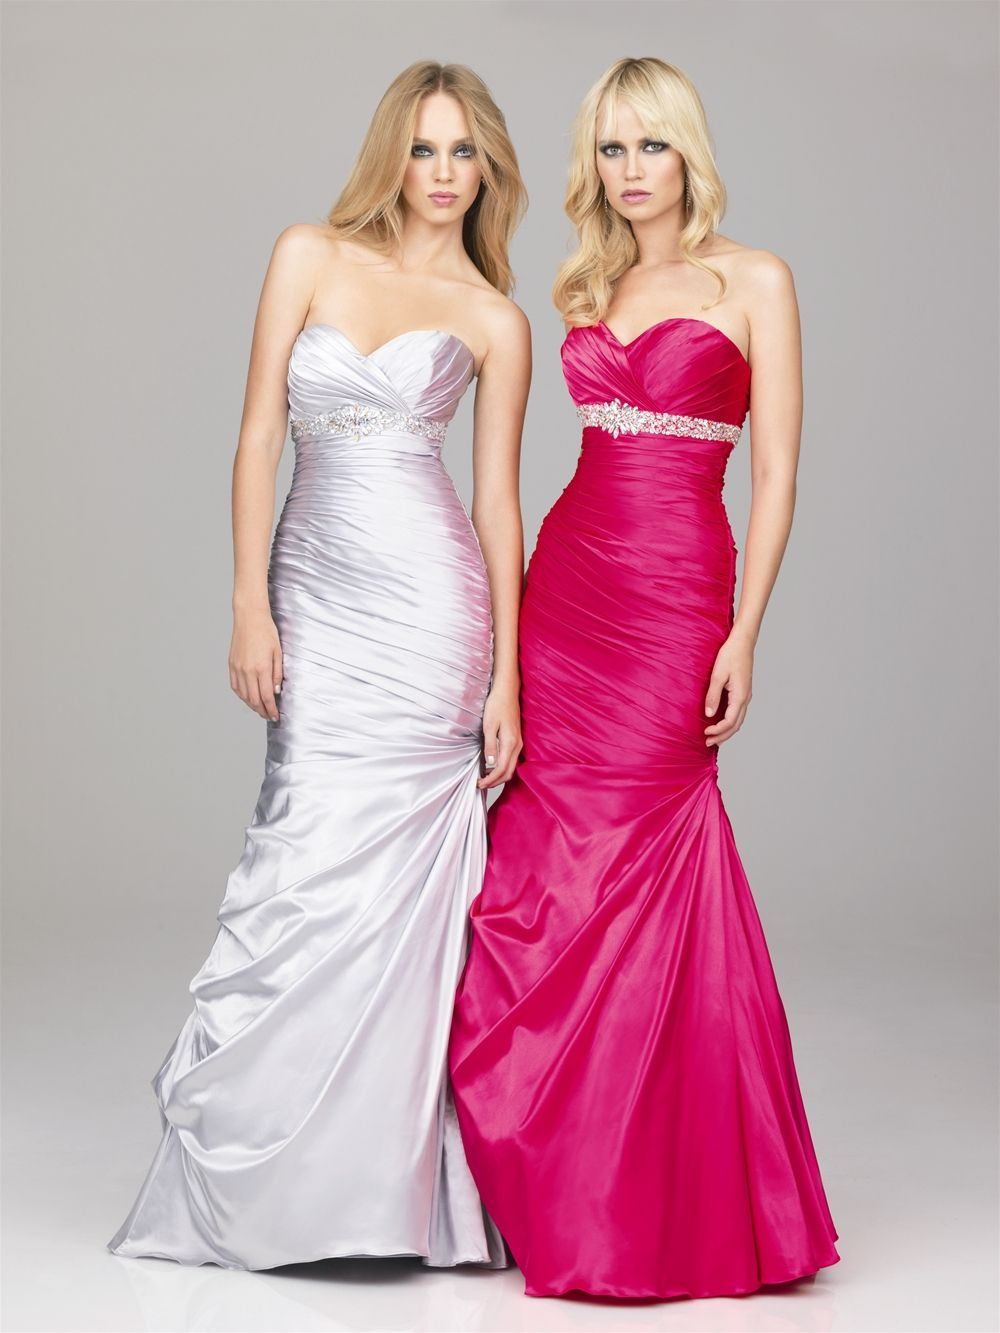 Night Moves Prom Dresses | Wedding dresses | Pinterest